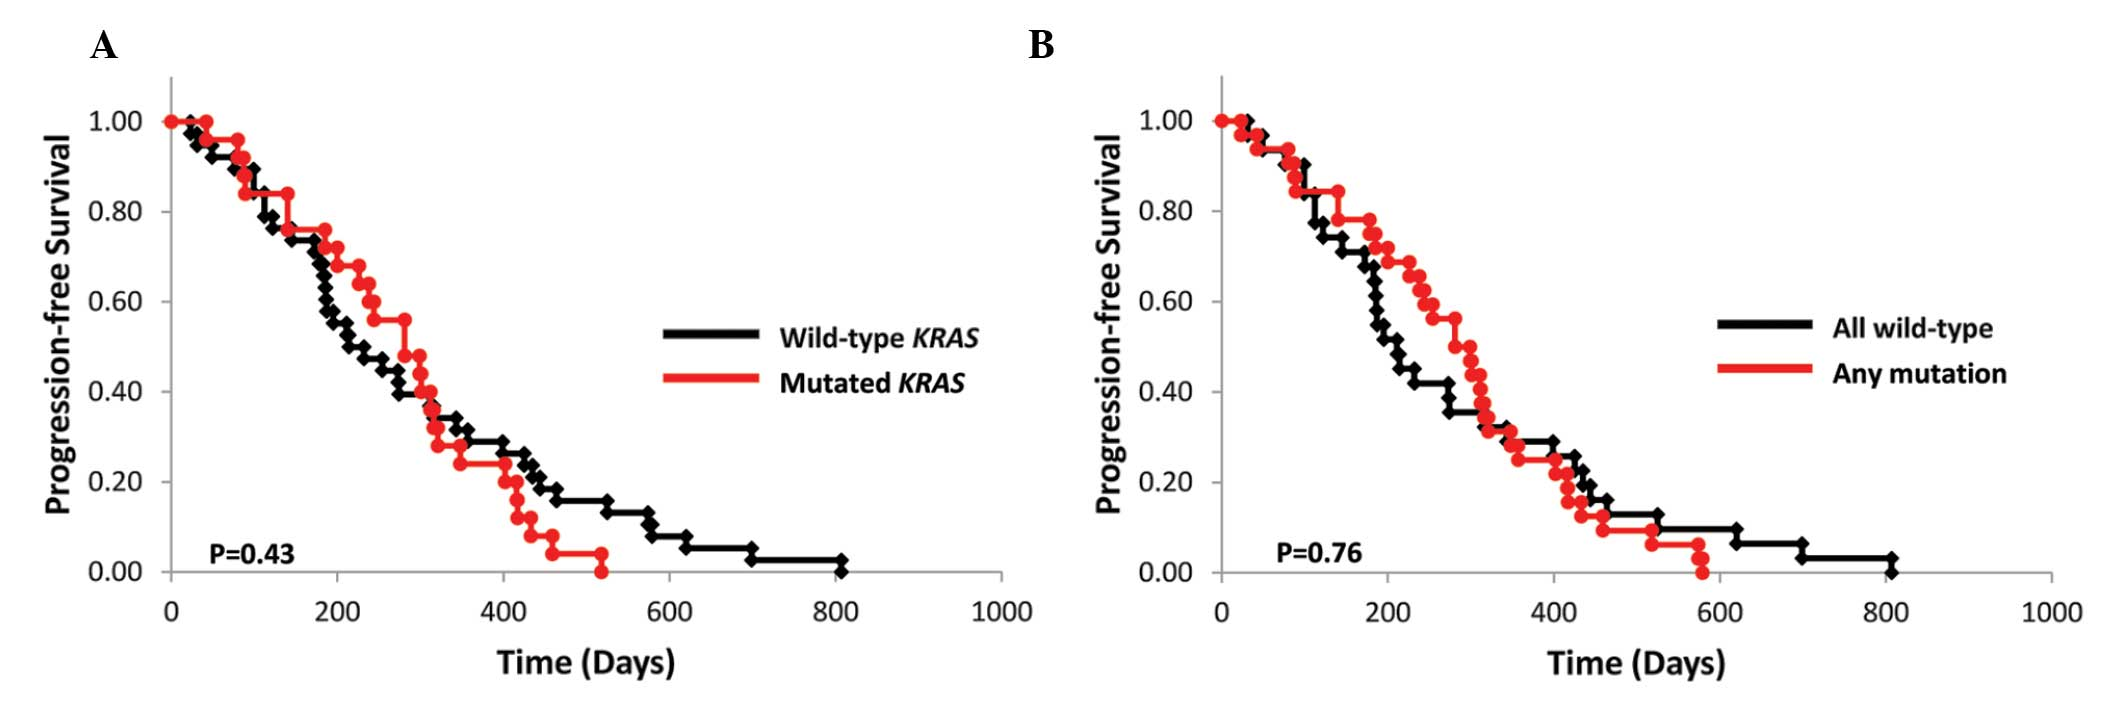 Kras Mutation In Patients With Metastatic Colorectal Cancer Does Not Preclude Benefit From Oxaliplatin Or Irinotecan Based Treatment